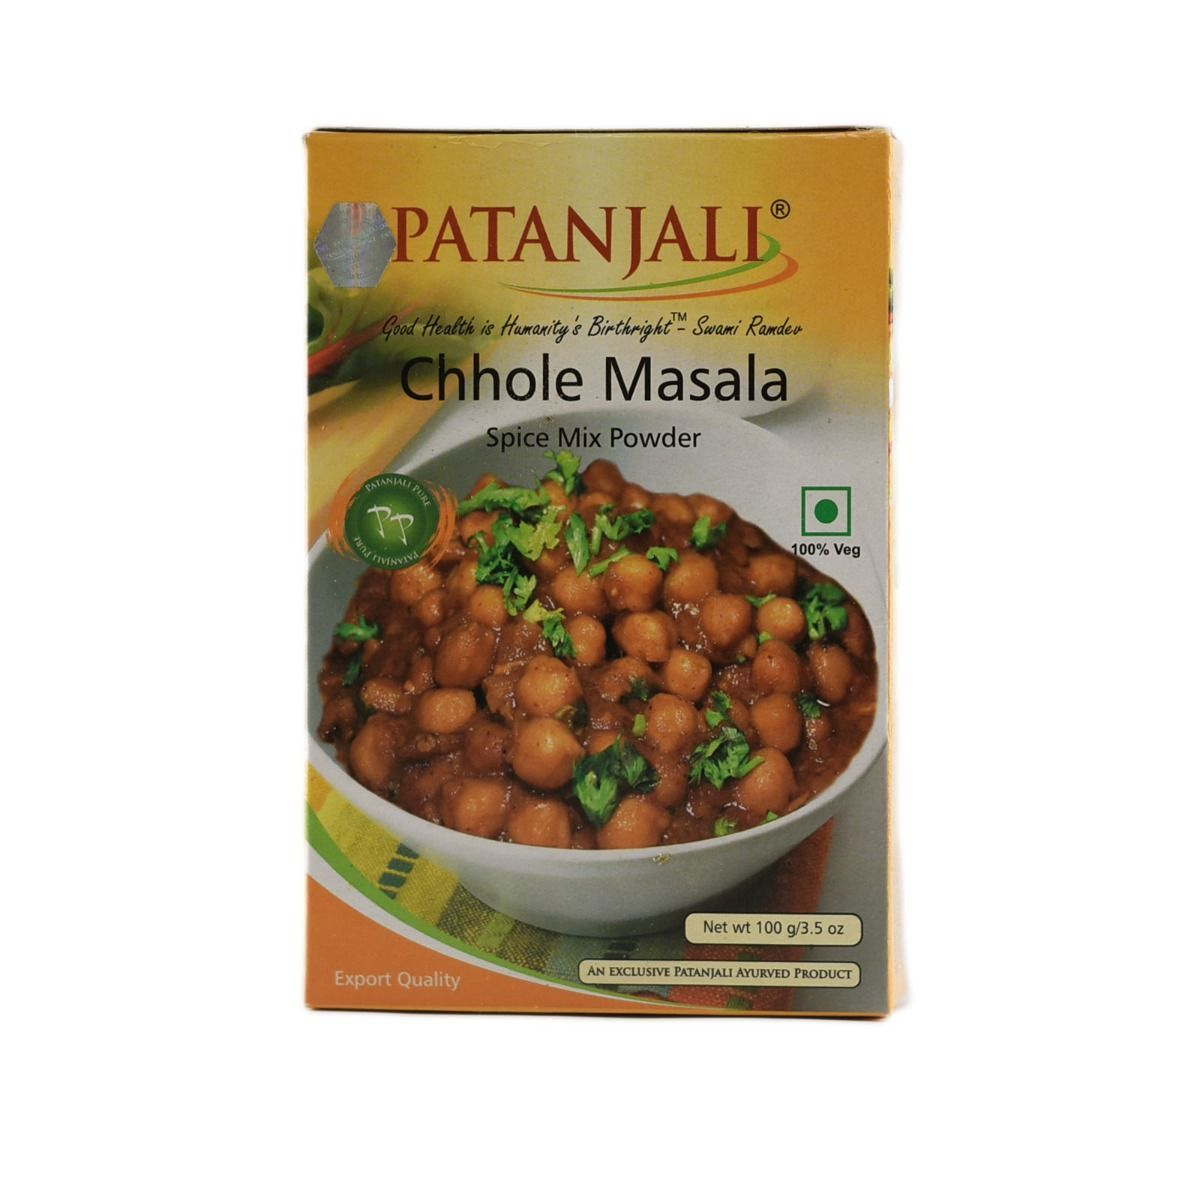 Pin by Nemat Mubeen on Patanjali Product Masala spice